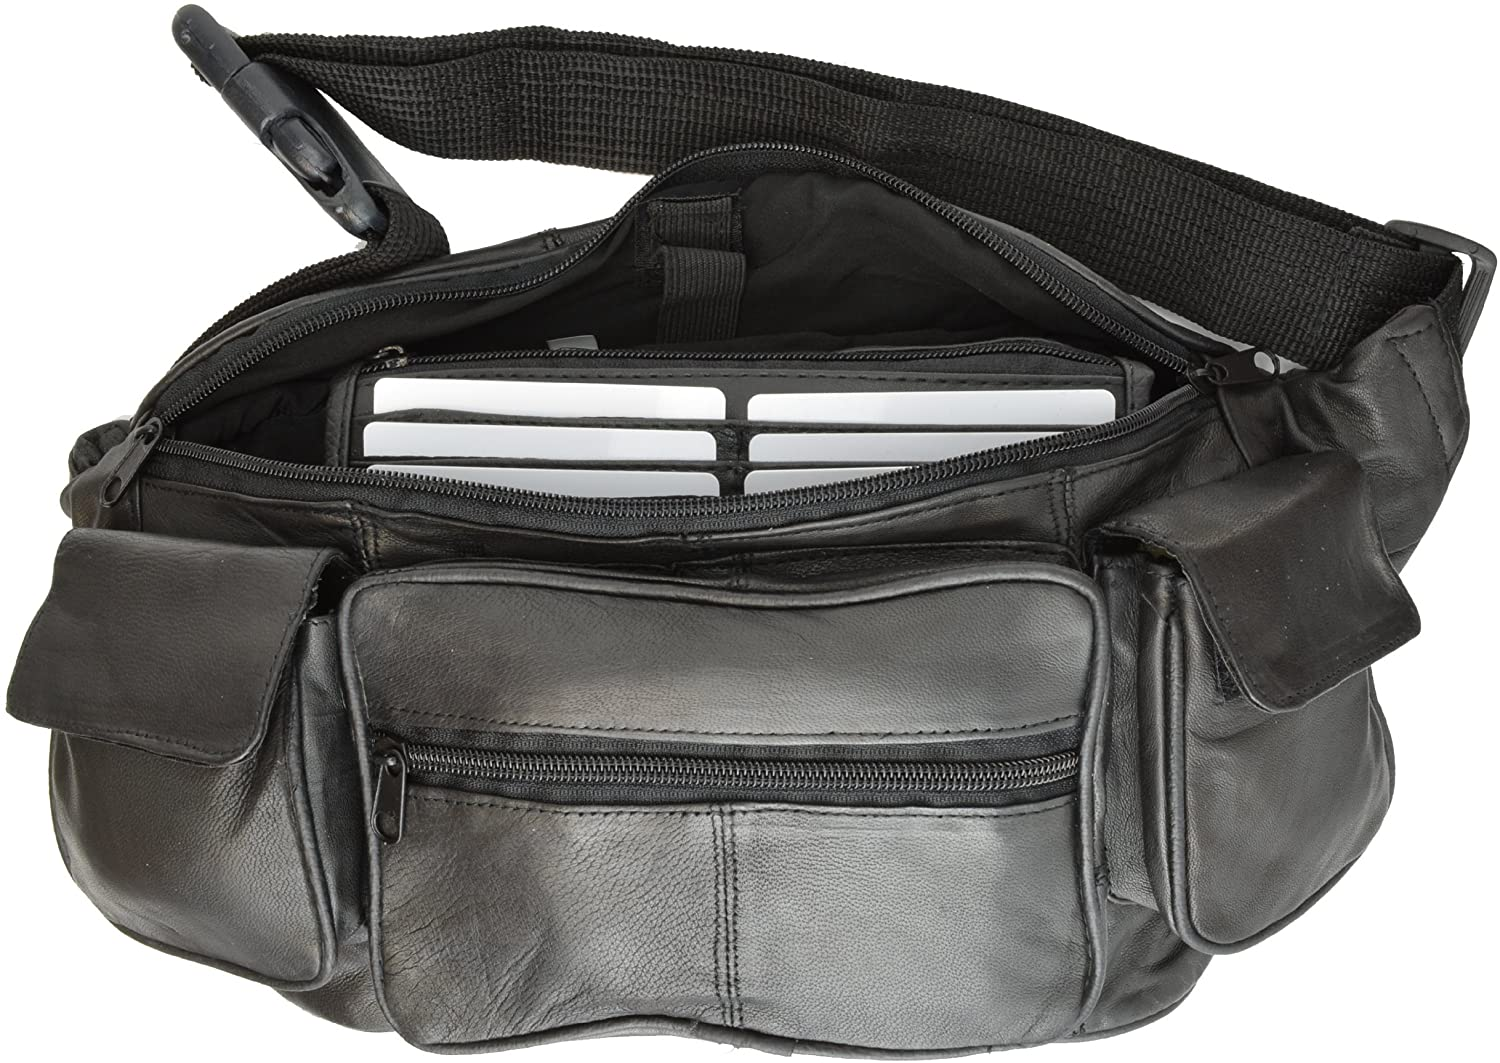 New Large Genuine Leather Waist Bag Fanny Pack with Two Cell Phone Pockets and Six Exterior Pockets